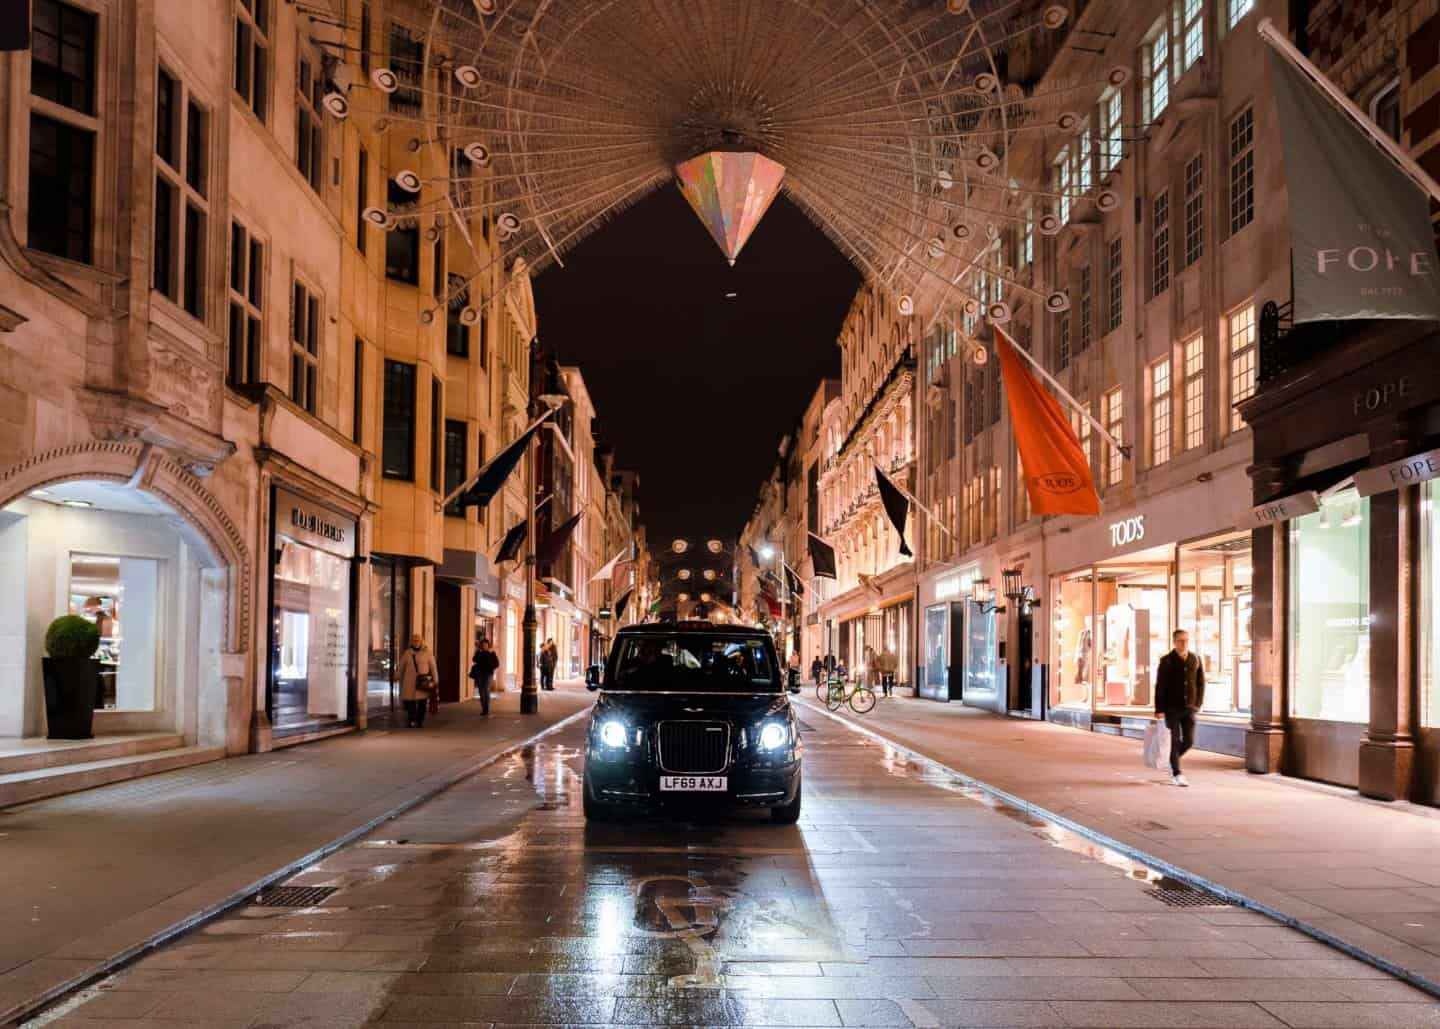 An iconic black taxi on Bond Street.  A fun way to explore London in 2 days